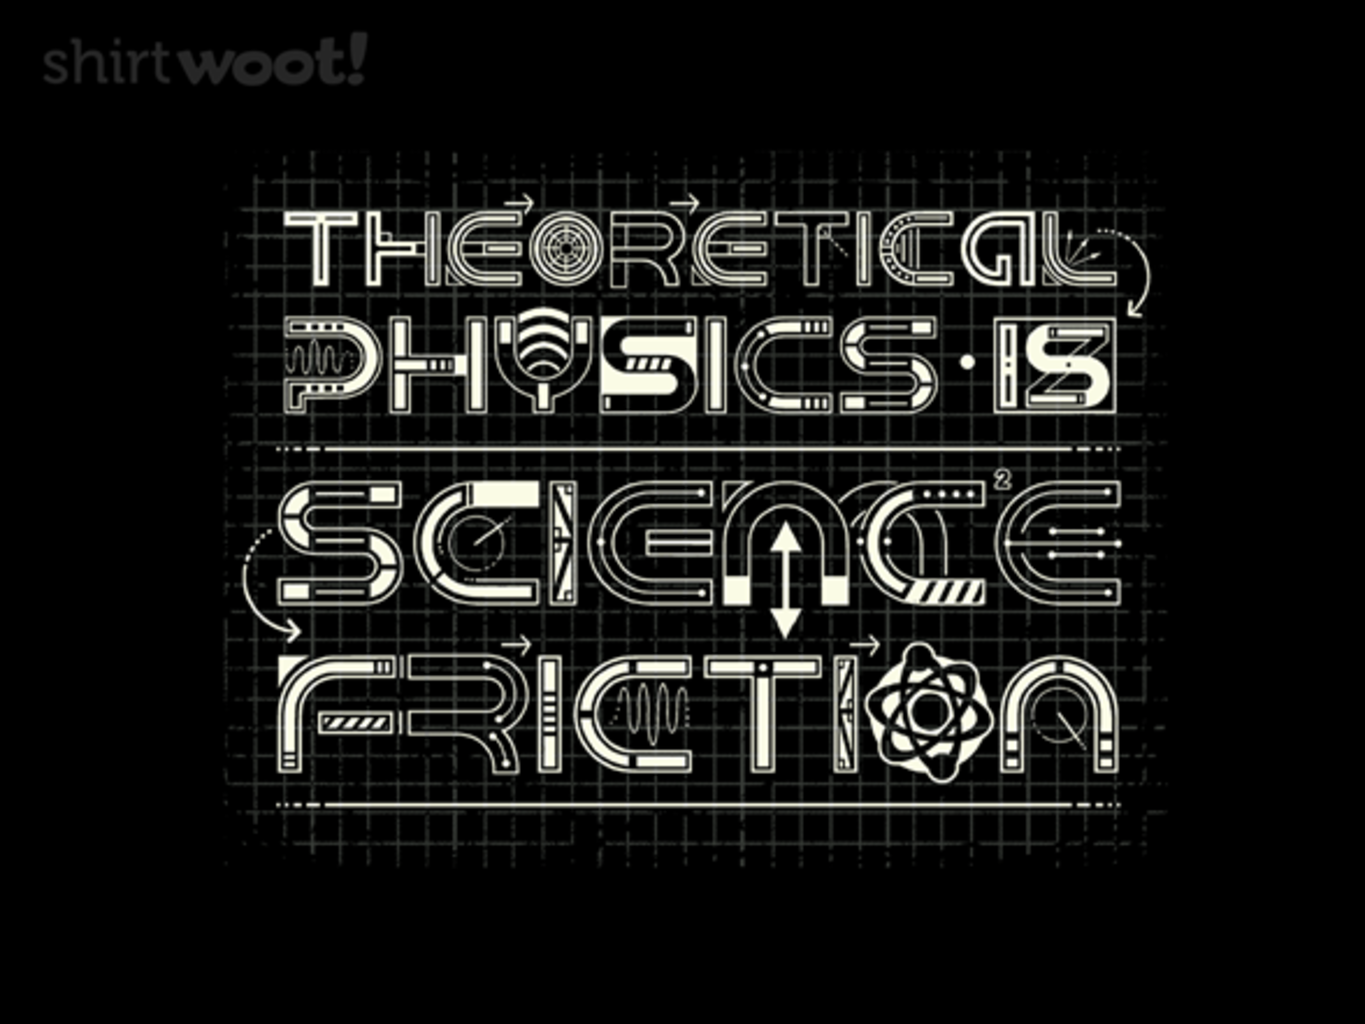 Woot!: Science Friction